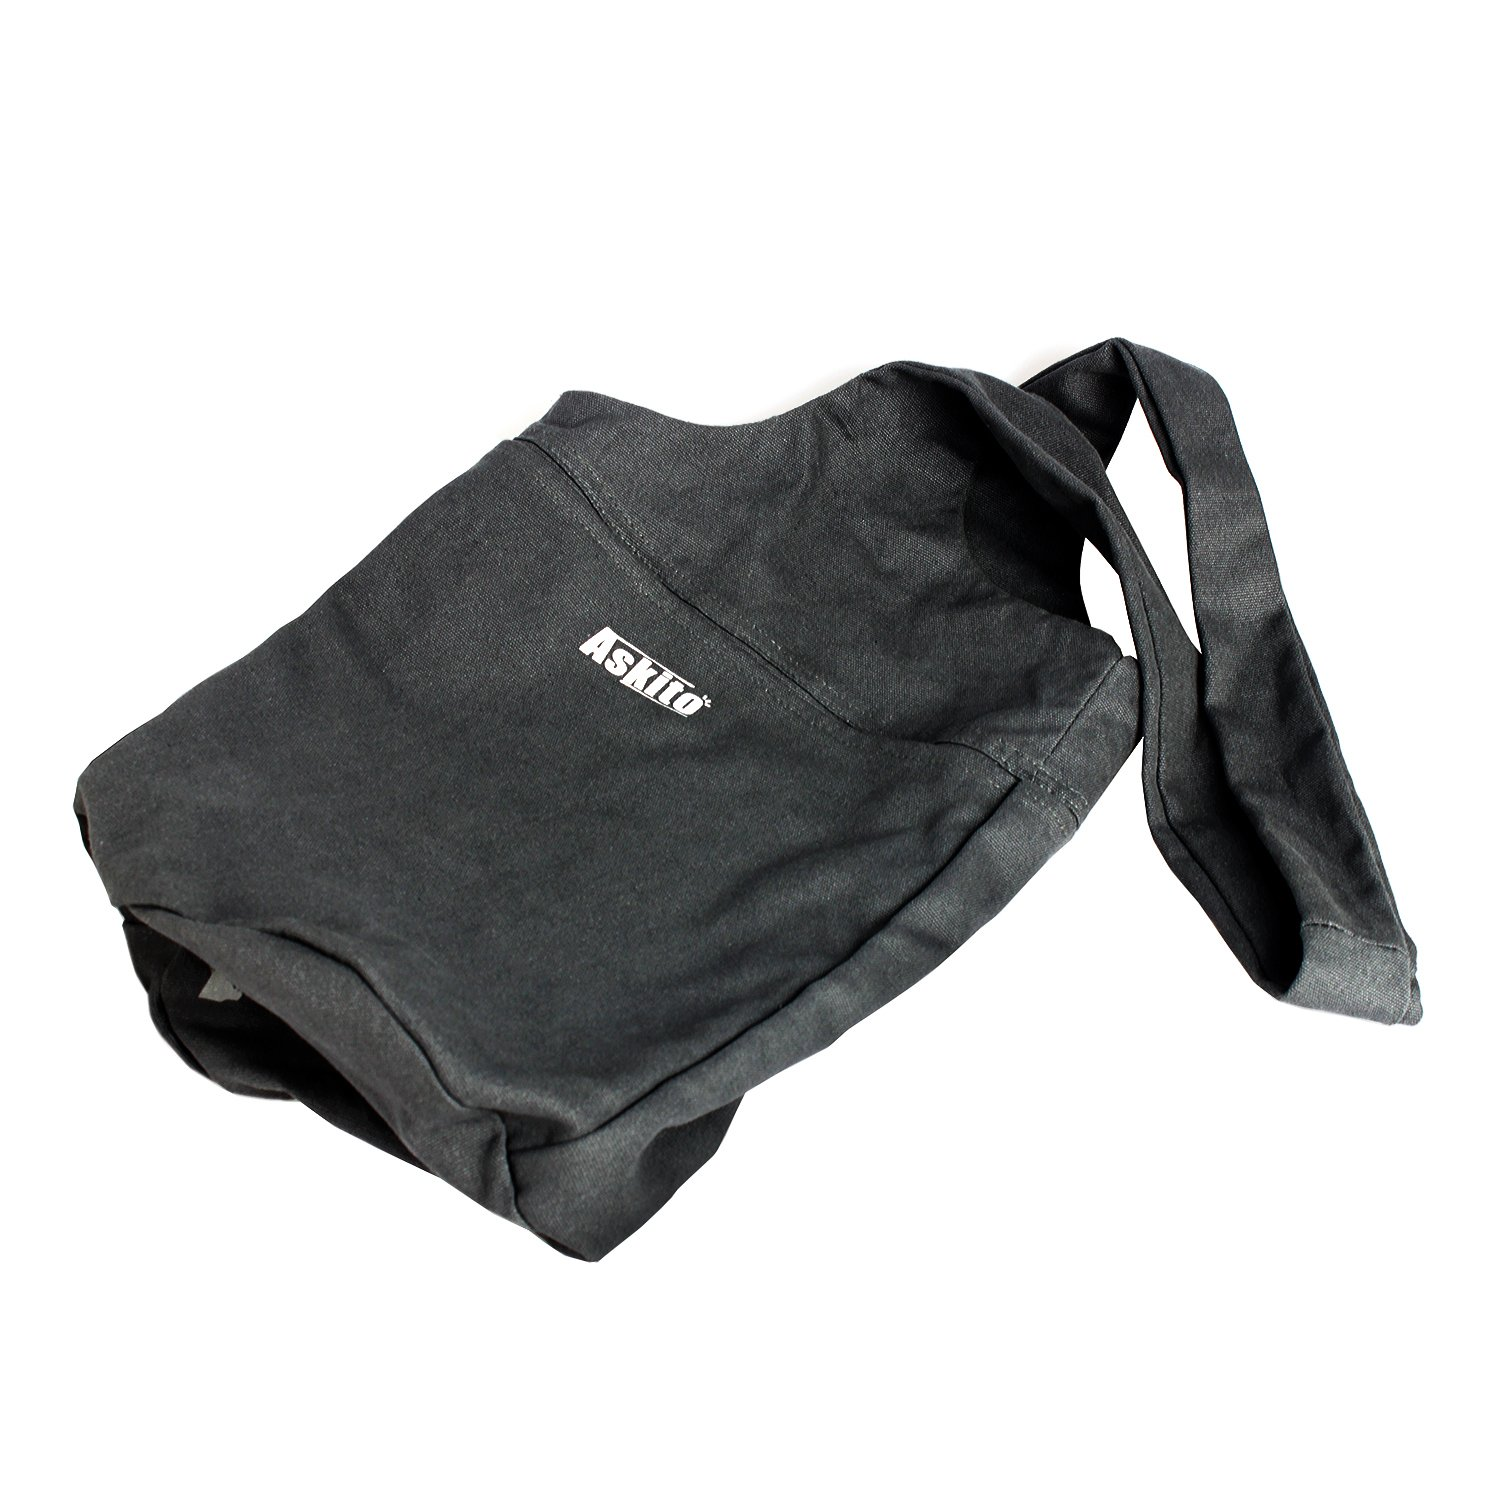 Yoga Mat Tote Sling Carrier w// Large Side Pocket /& Zipper Pocket Yoga Mat Bag by ASKITO Fits Most Size Mats